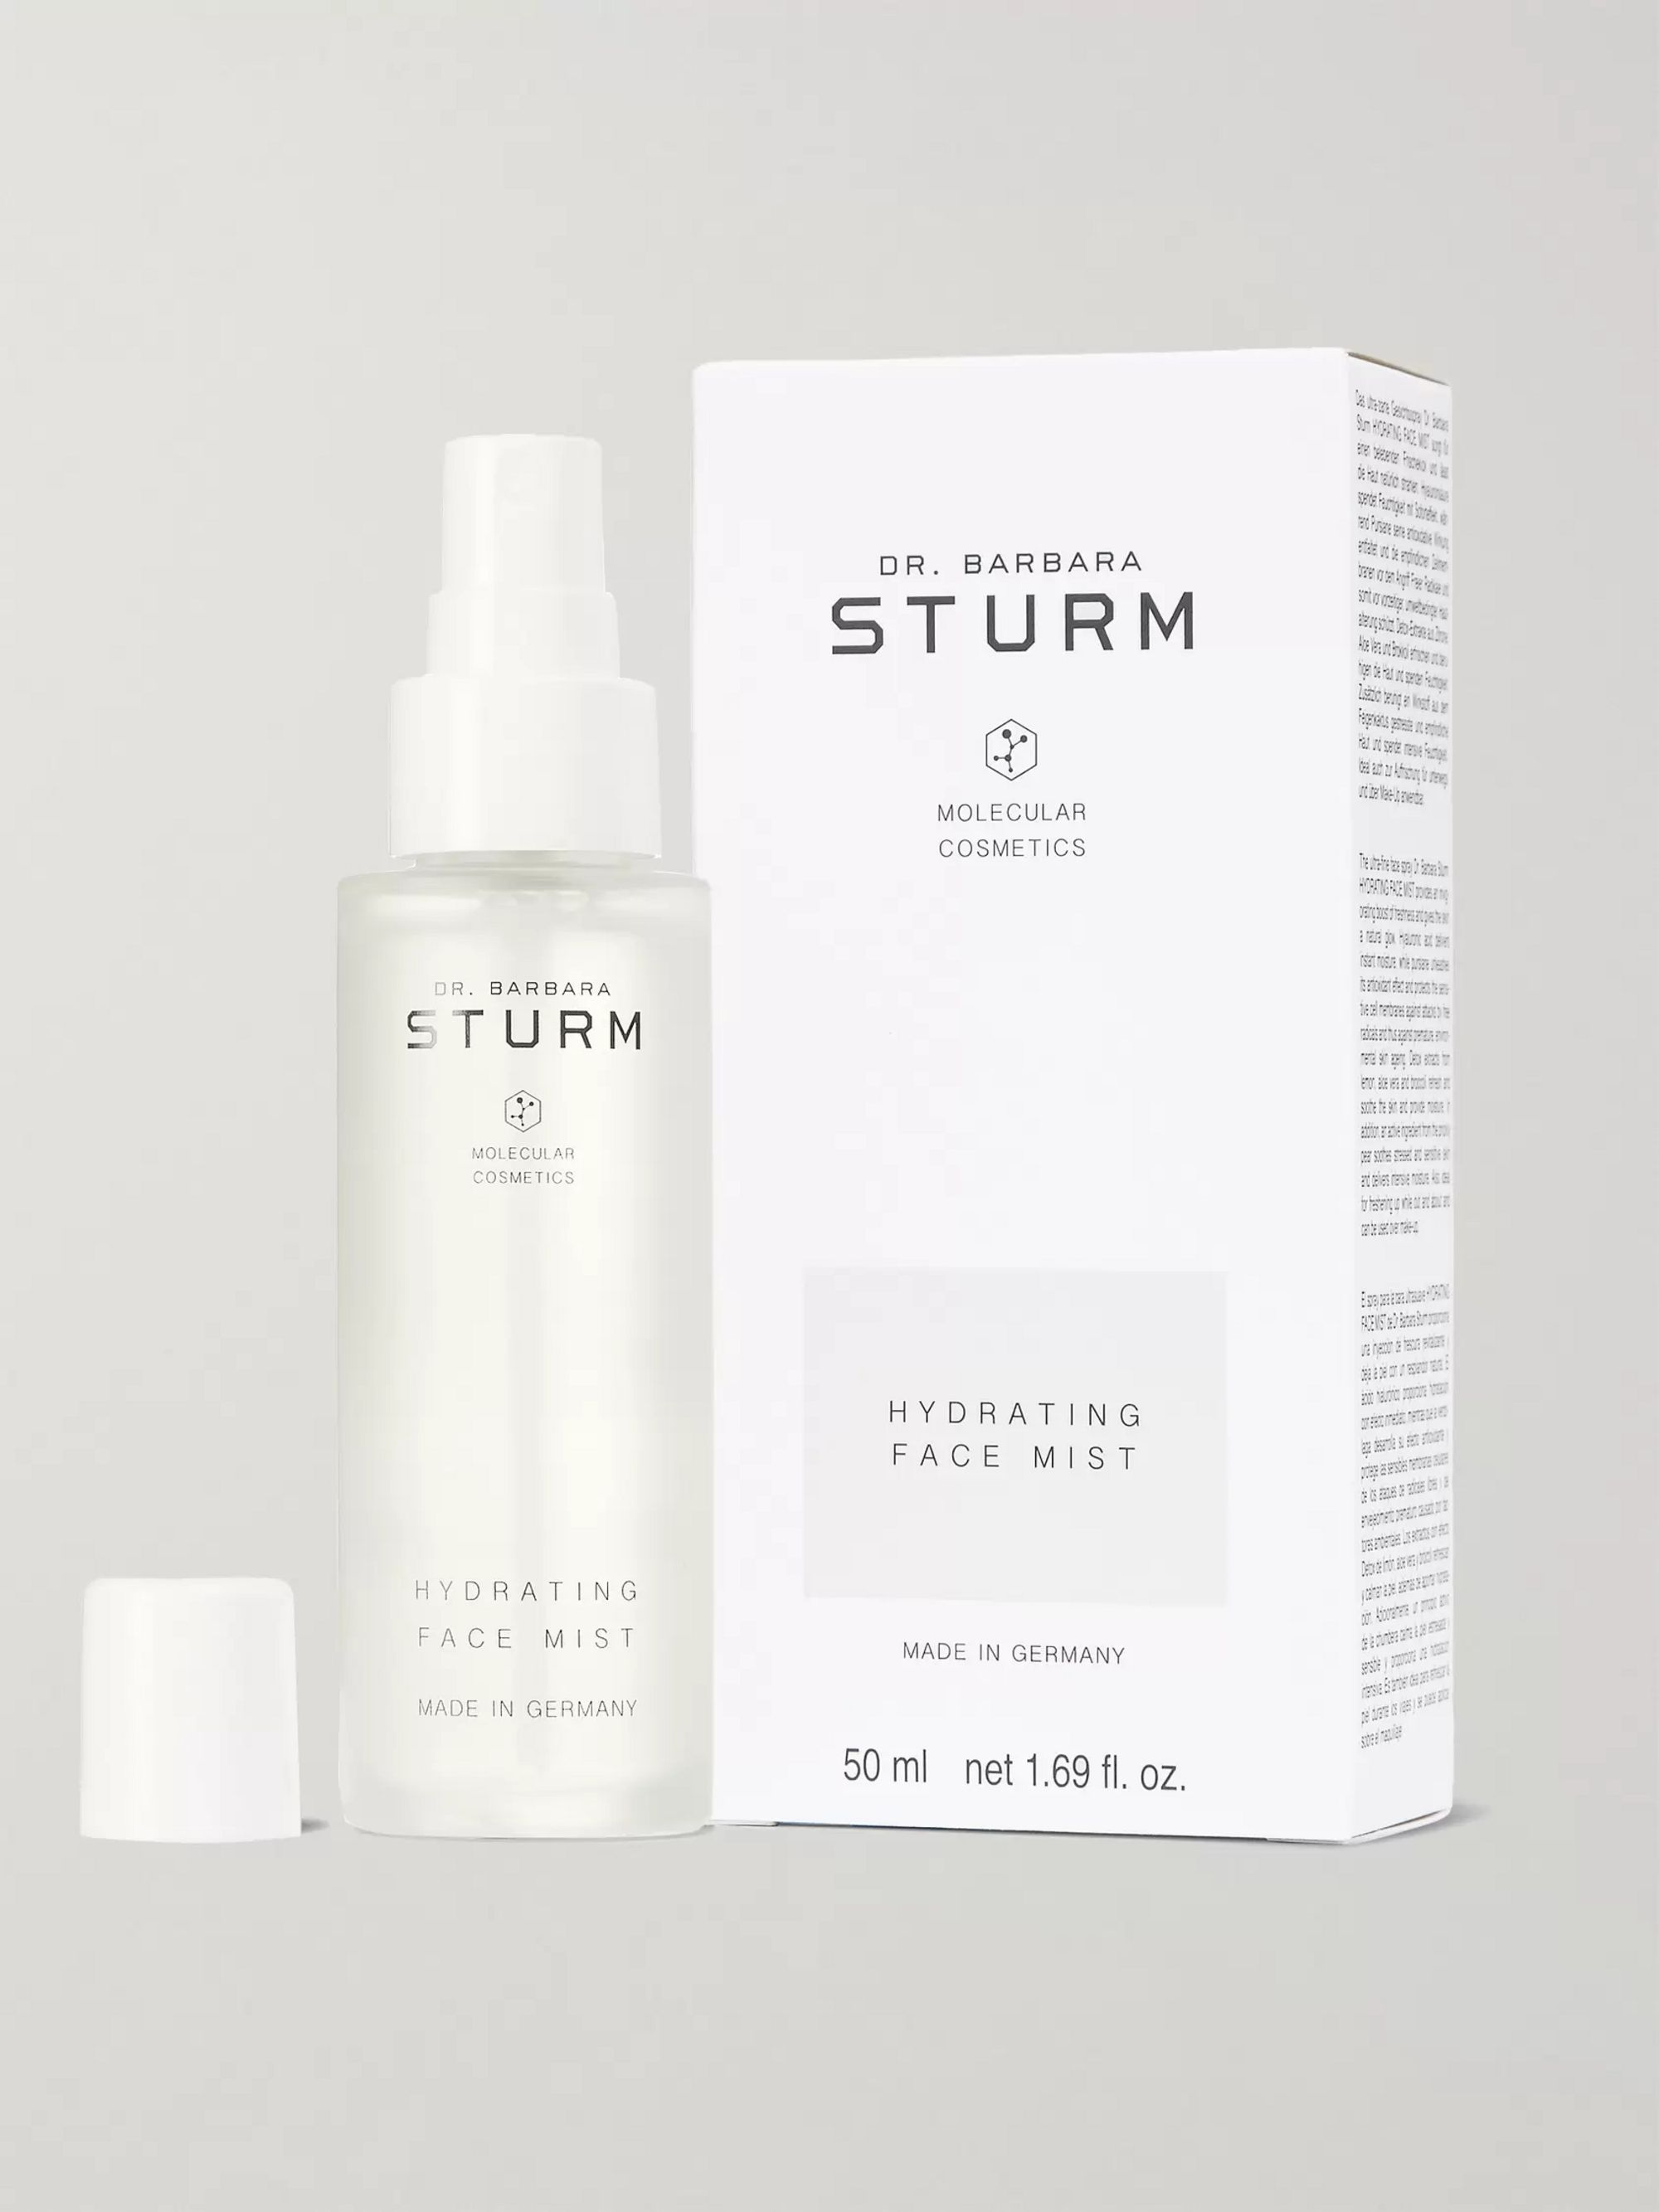 DR. BARBARA STURM Hydrating Face Mist, 50ml